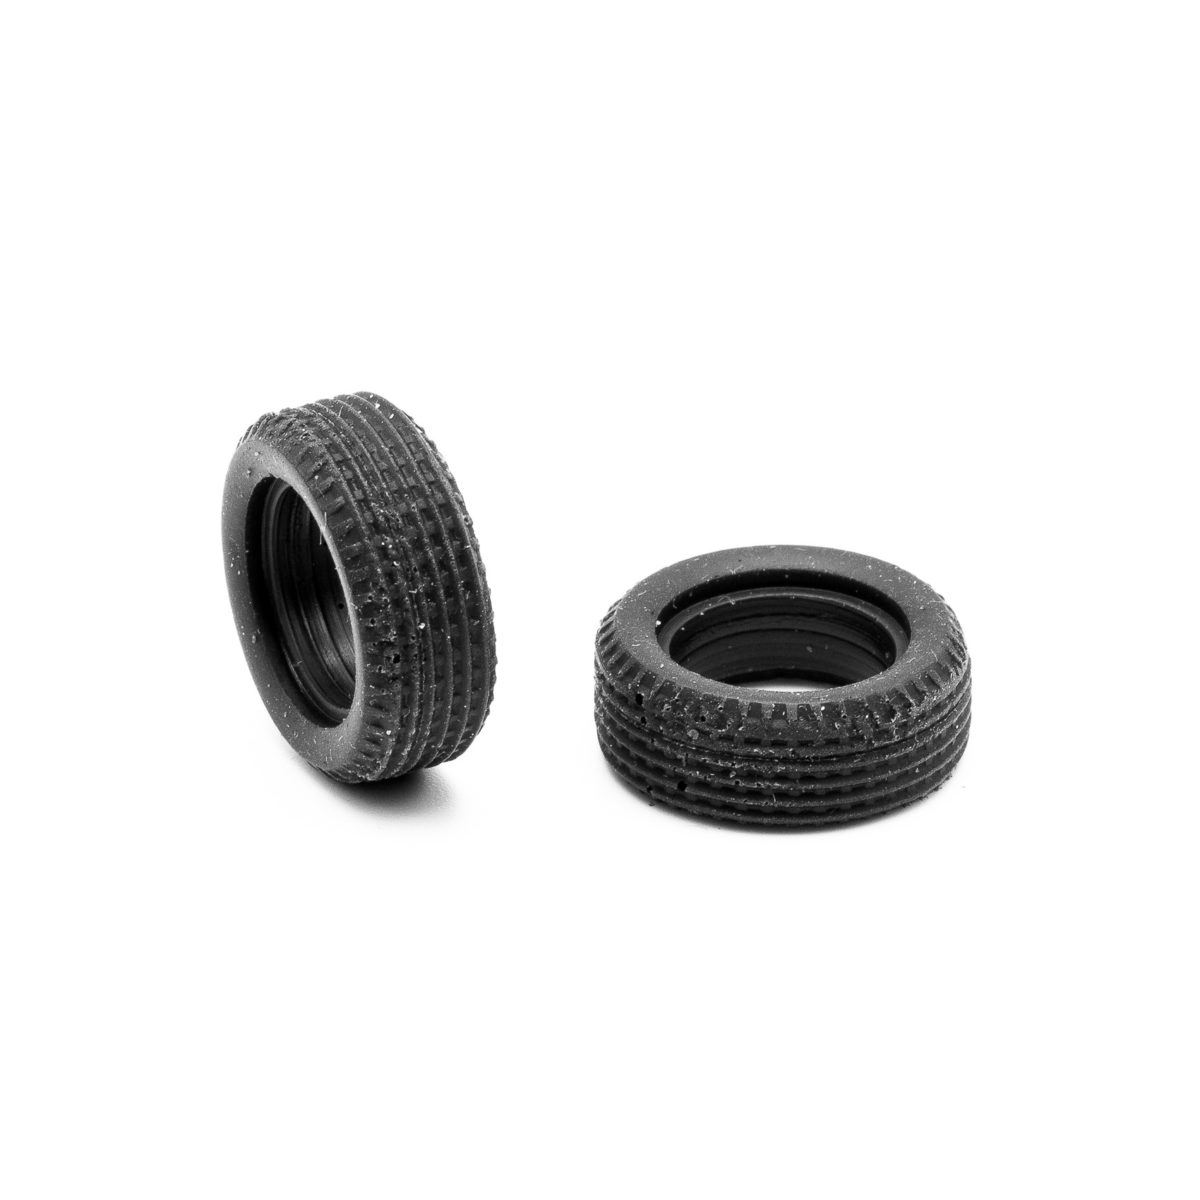 Front Slot Car Tires for Policar Super Lexan Body 1:24